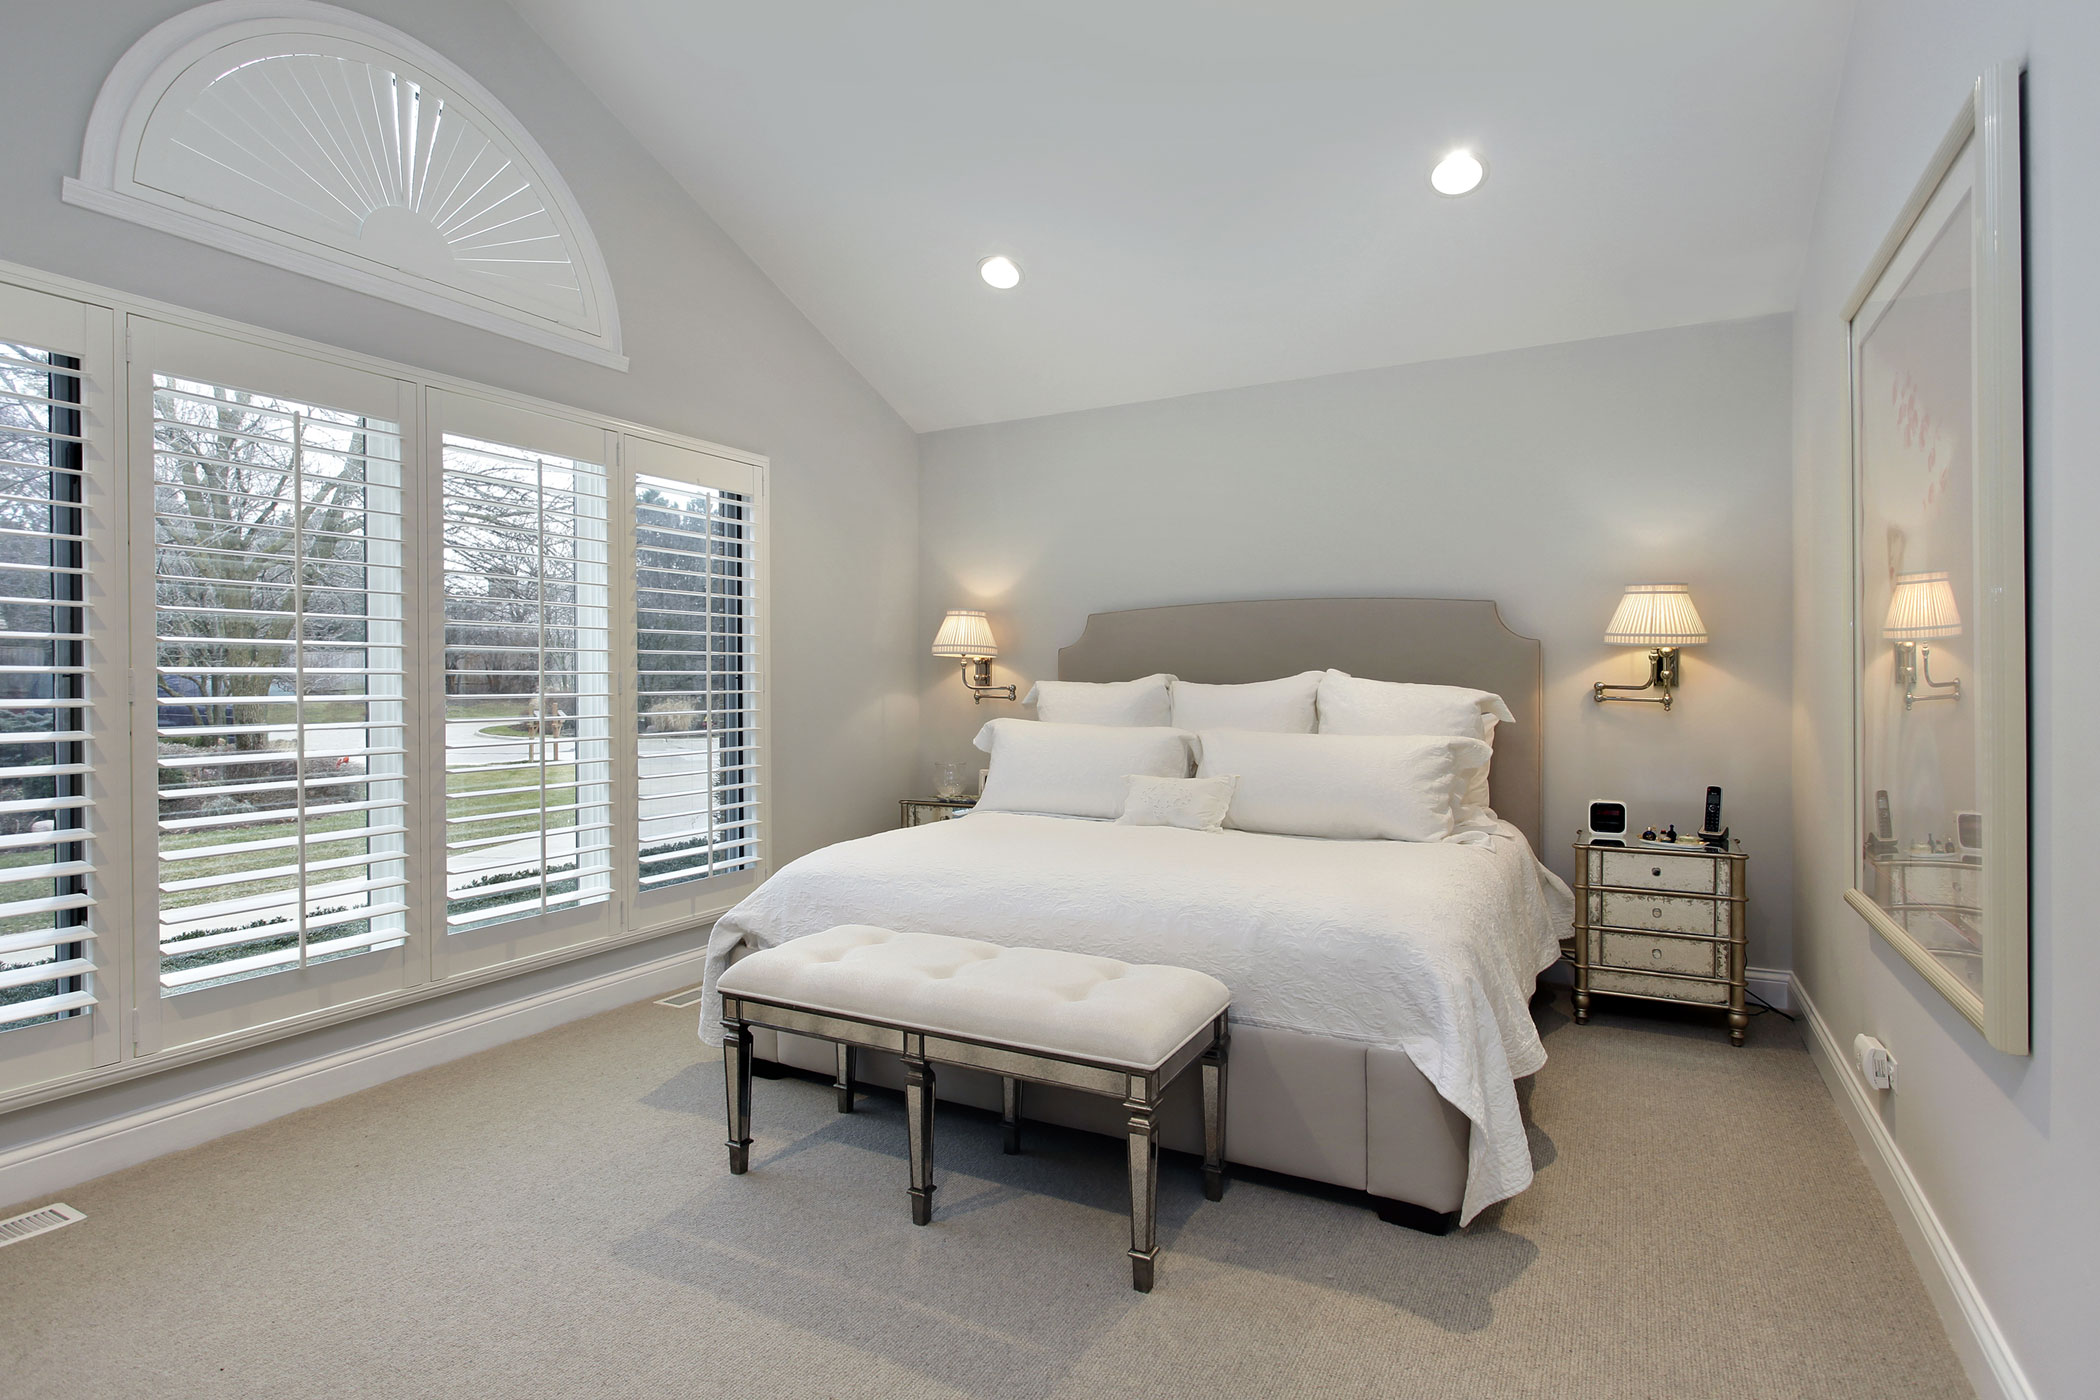 A modern bedroom interior with white wall and wooden shutters on the window with beautiful bedding with bench in the middle